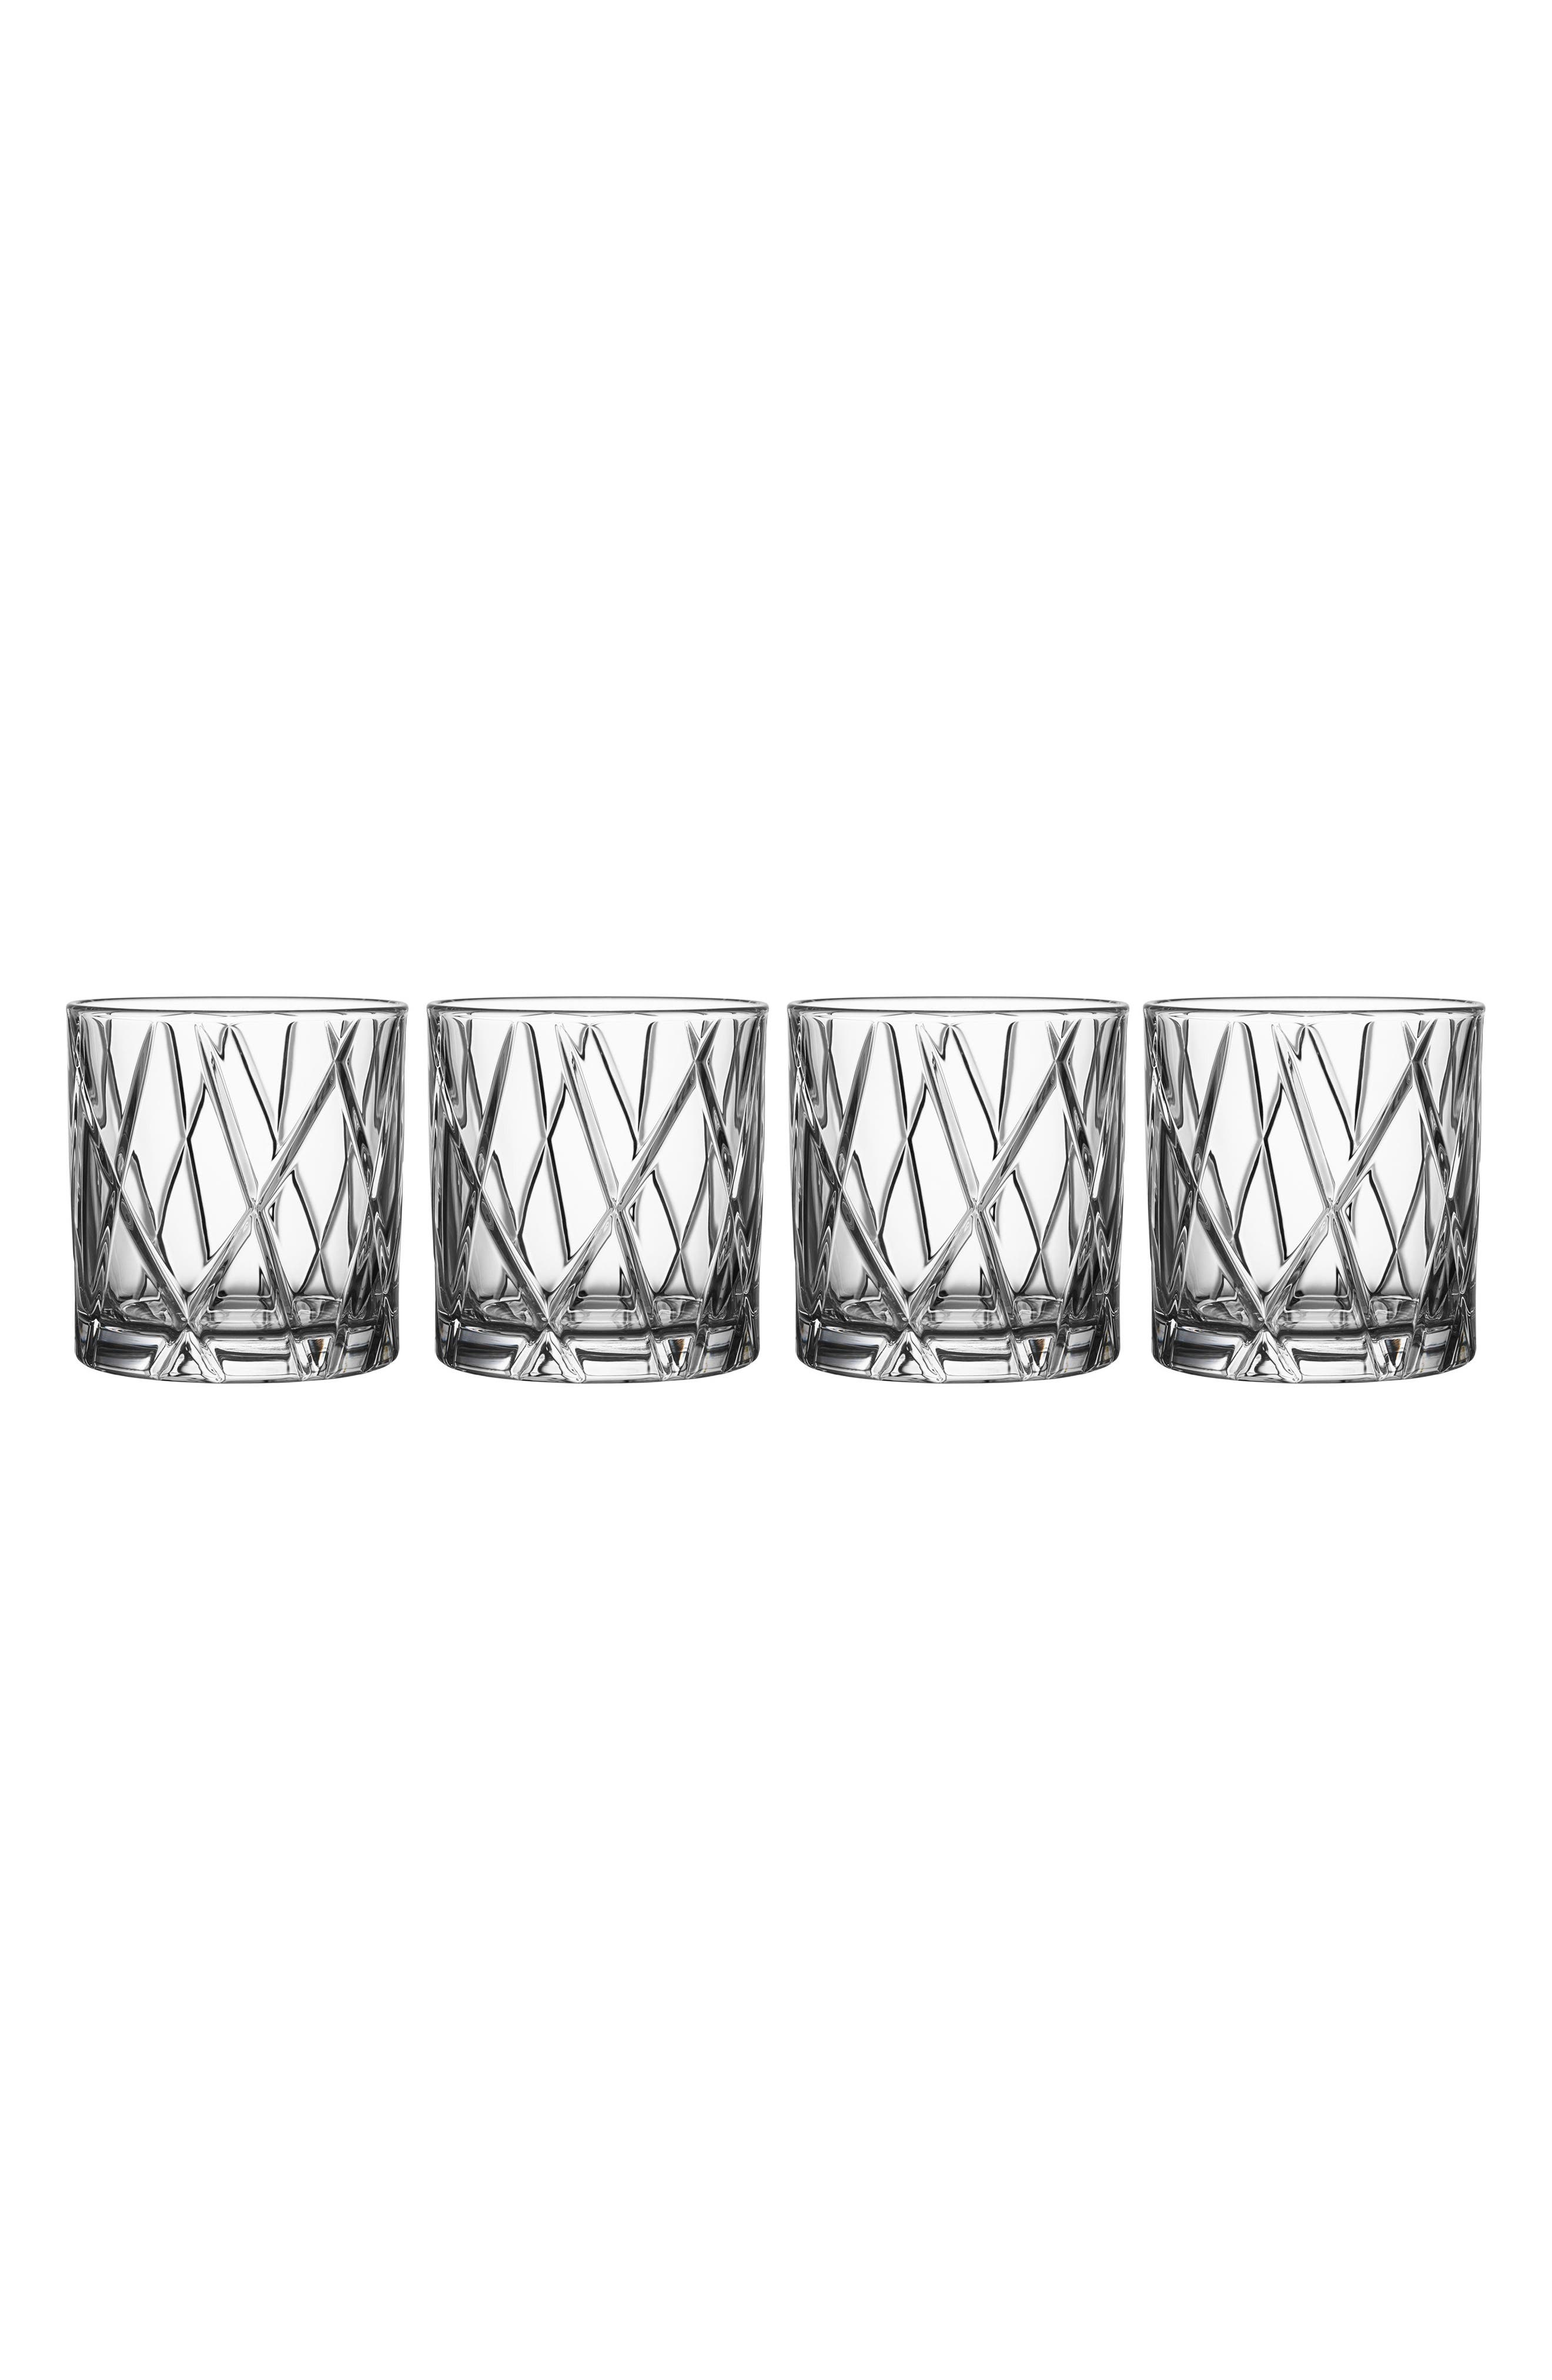 City Set of 4 Crystal Double Old Fashioned Glasses,                             Main thumbnail 1, color,                             100